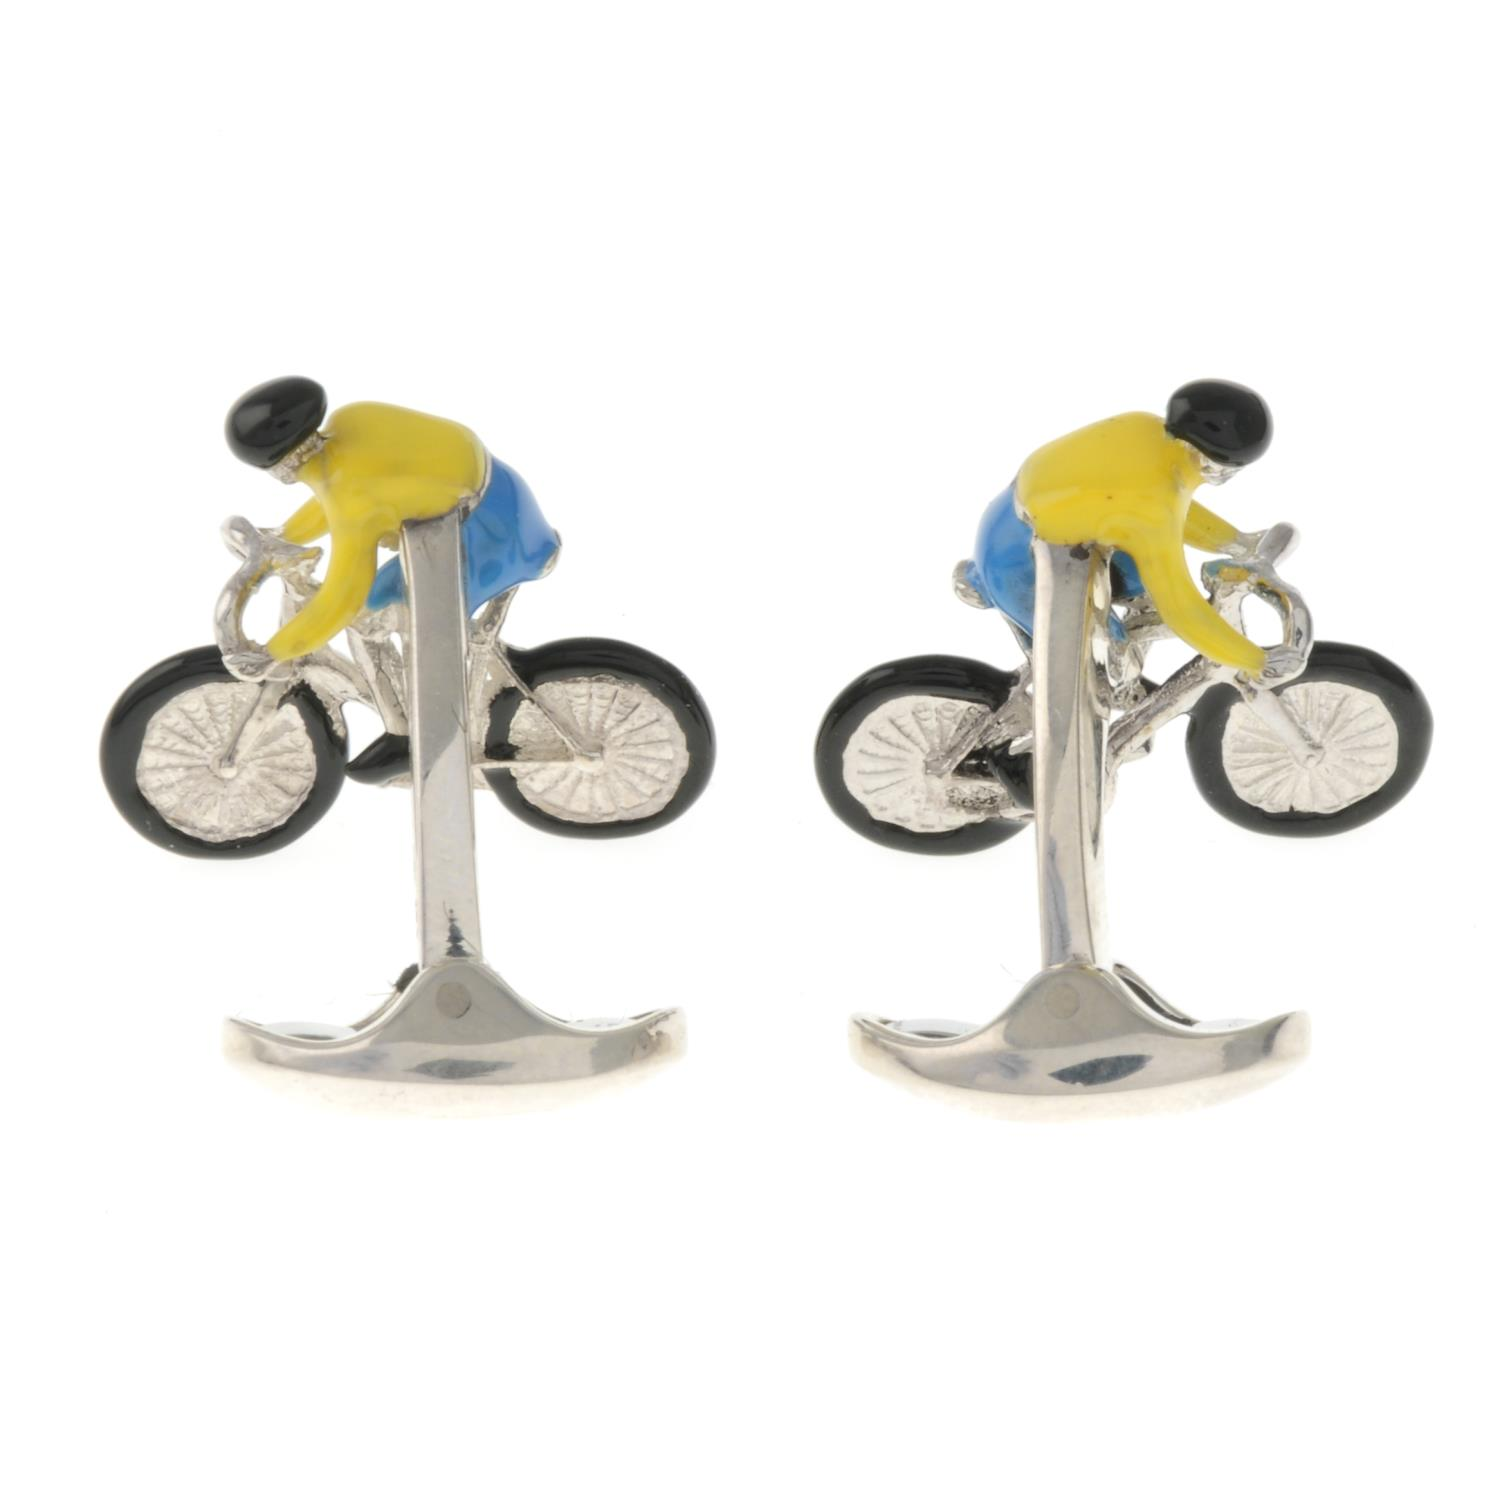 A pair of silver enamel bicycle cufflinks, by Deakin and Francis.Signed D&F. - Image 3 of 3